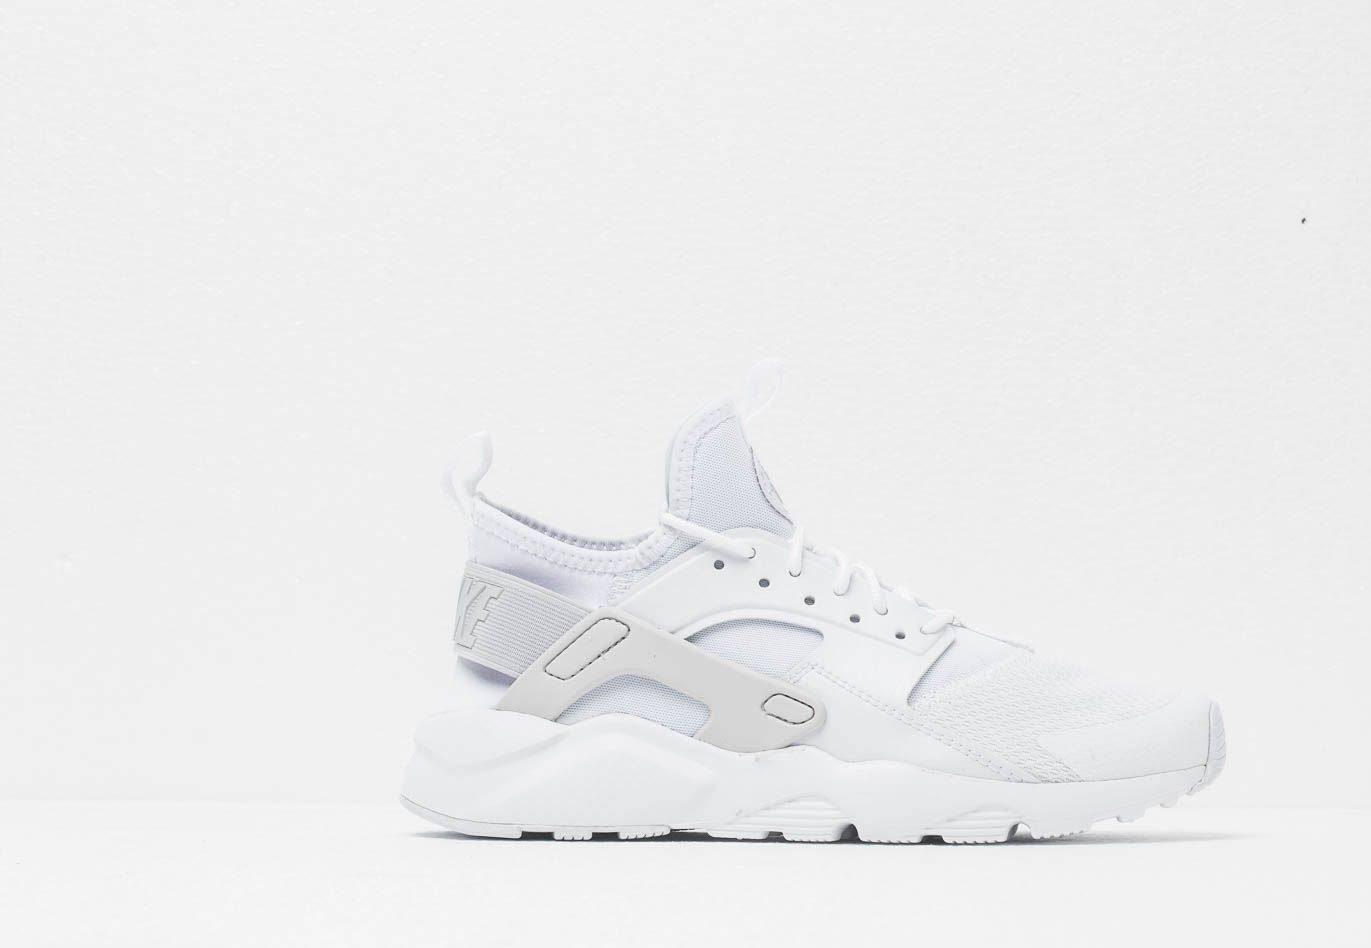 Nike Huarache hardloopschoenen Ultra heren White Air Vast Grey 4LcAq35Rj